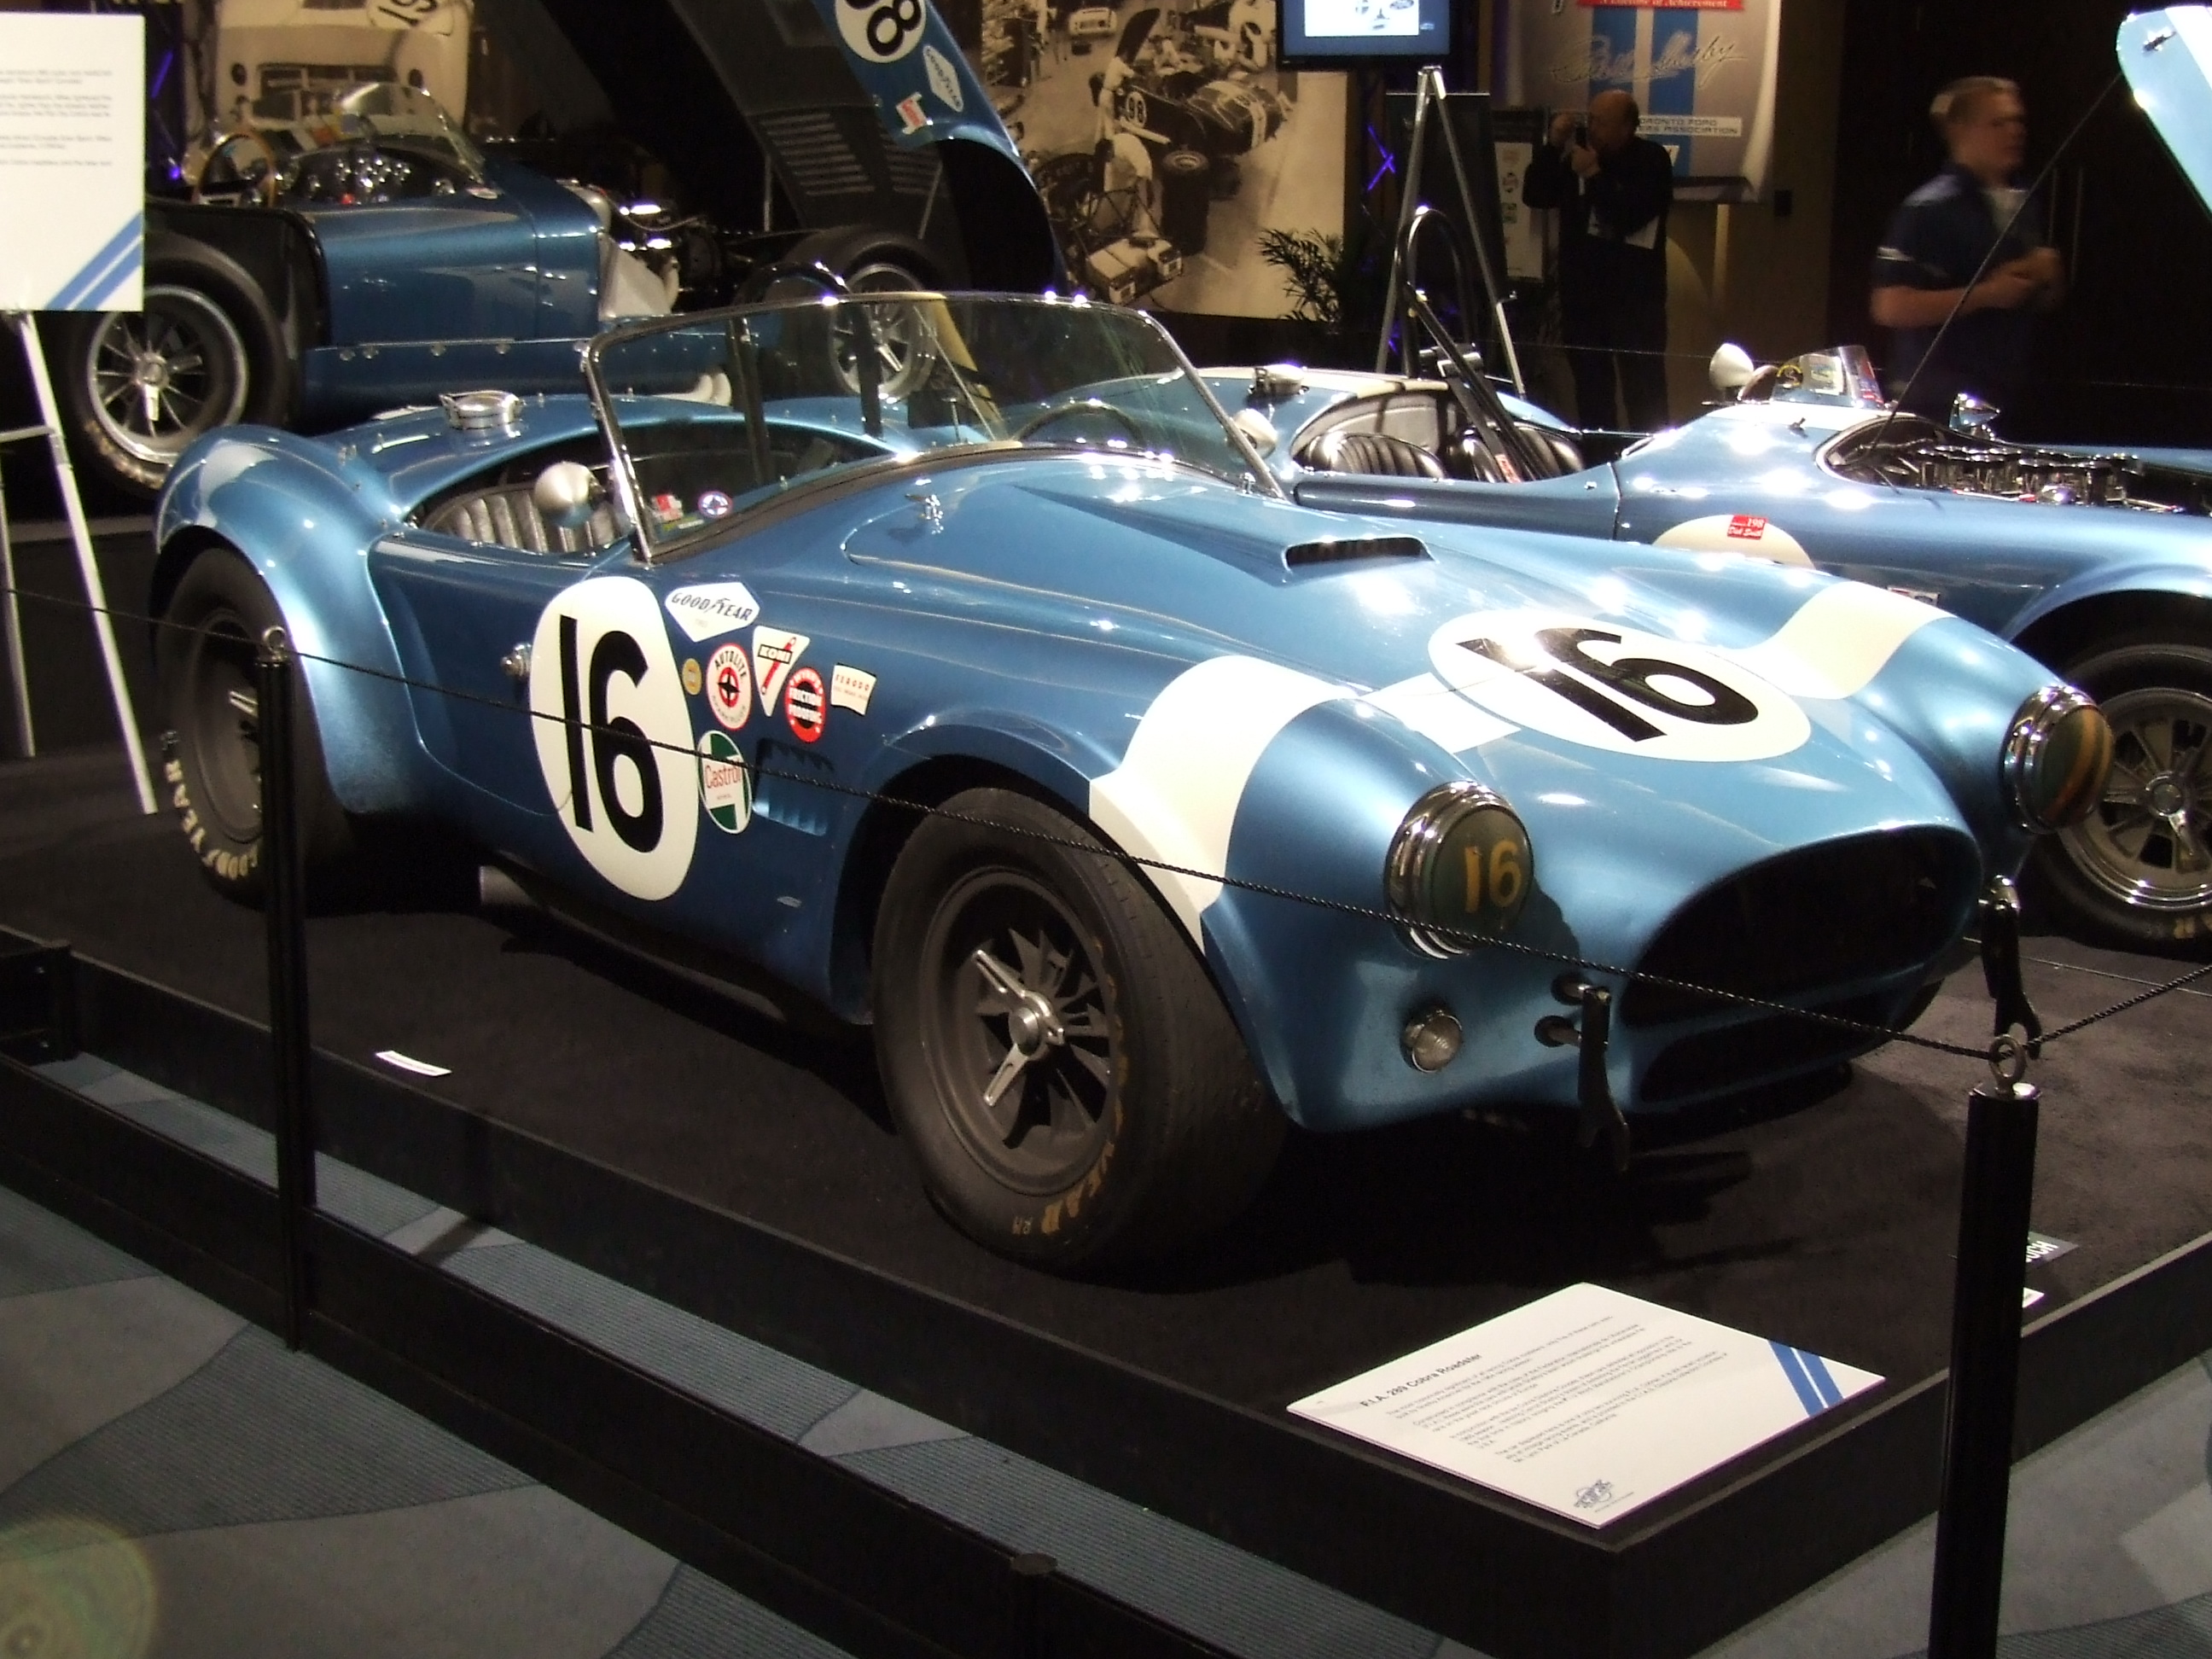 Ac cobra photo - 1